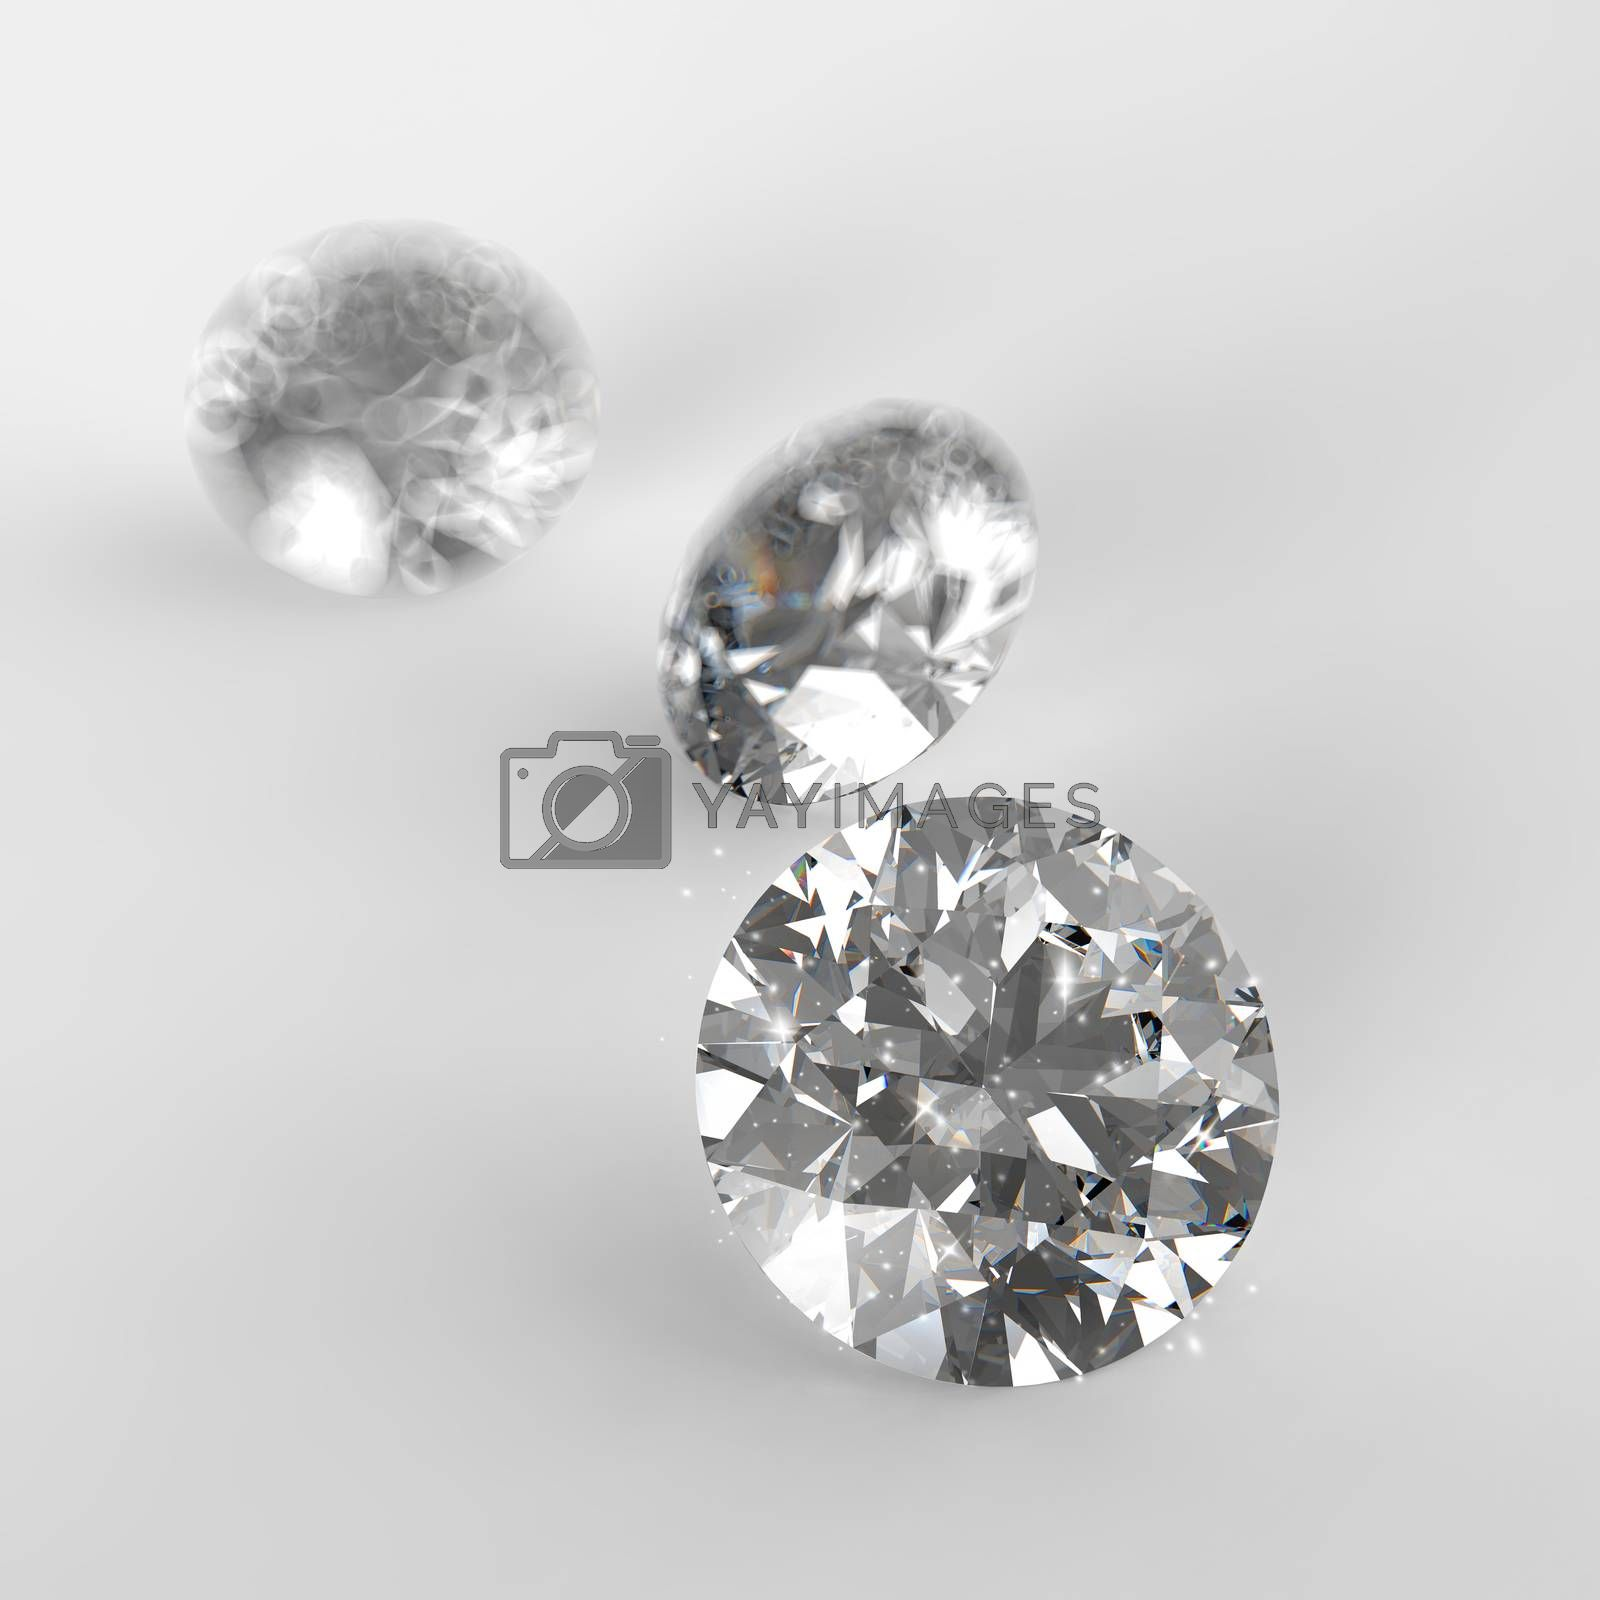 Royalty free image of Diamonds 3d composition on white background by everythingpossible